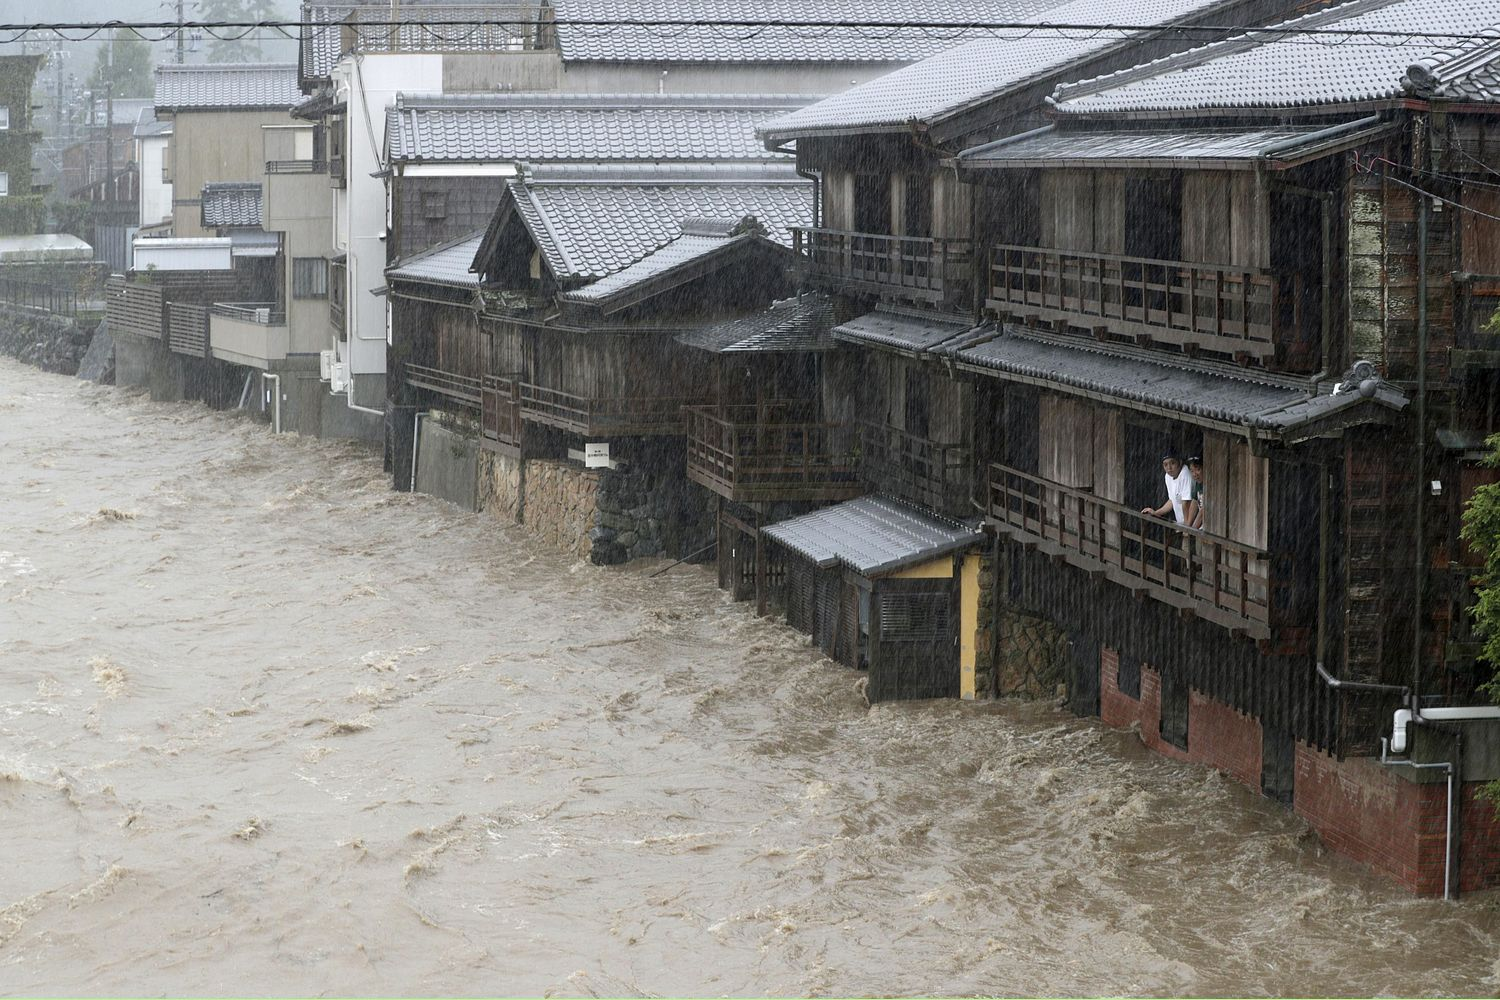 Men watch as the rain-swollen Isuzu River surges past houses in Ise in central Japan on Saturday. (Kyodo Photo)